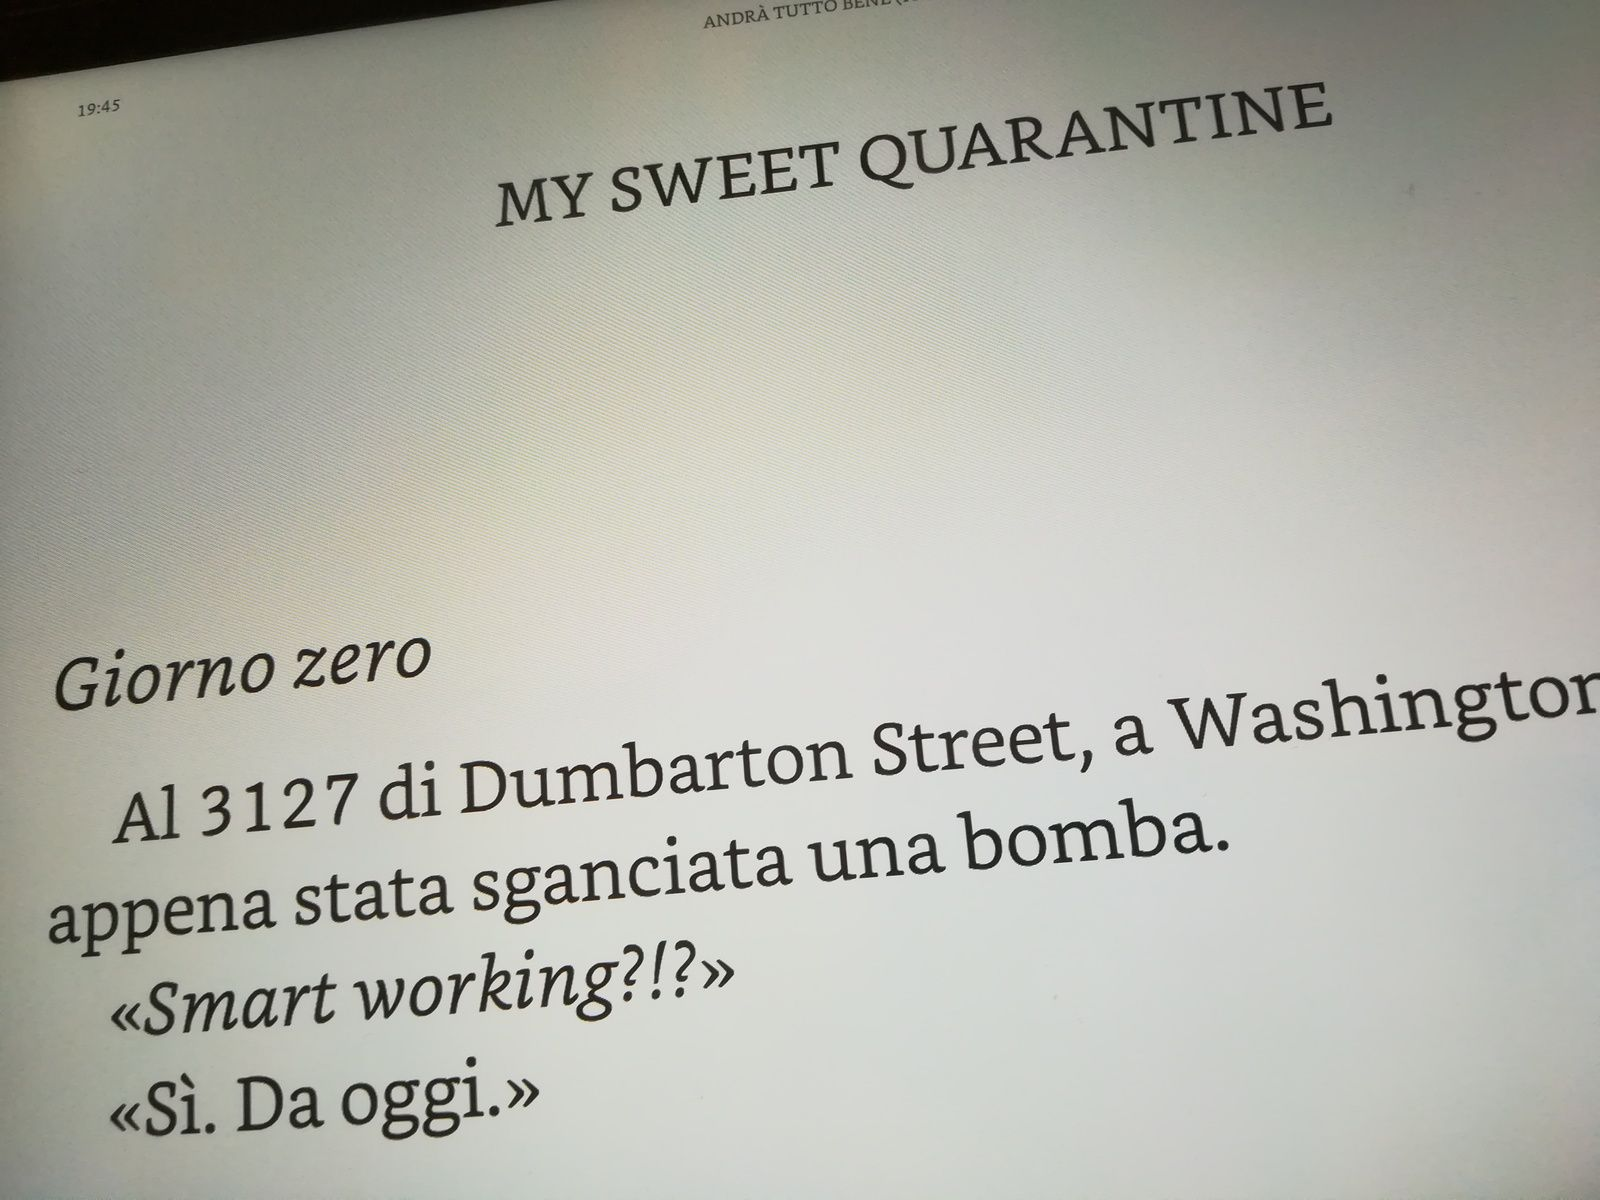 My sweet quarantine